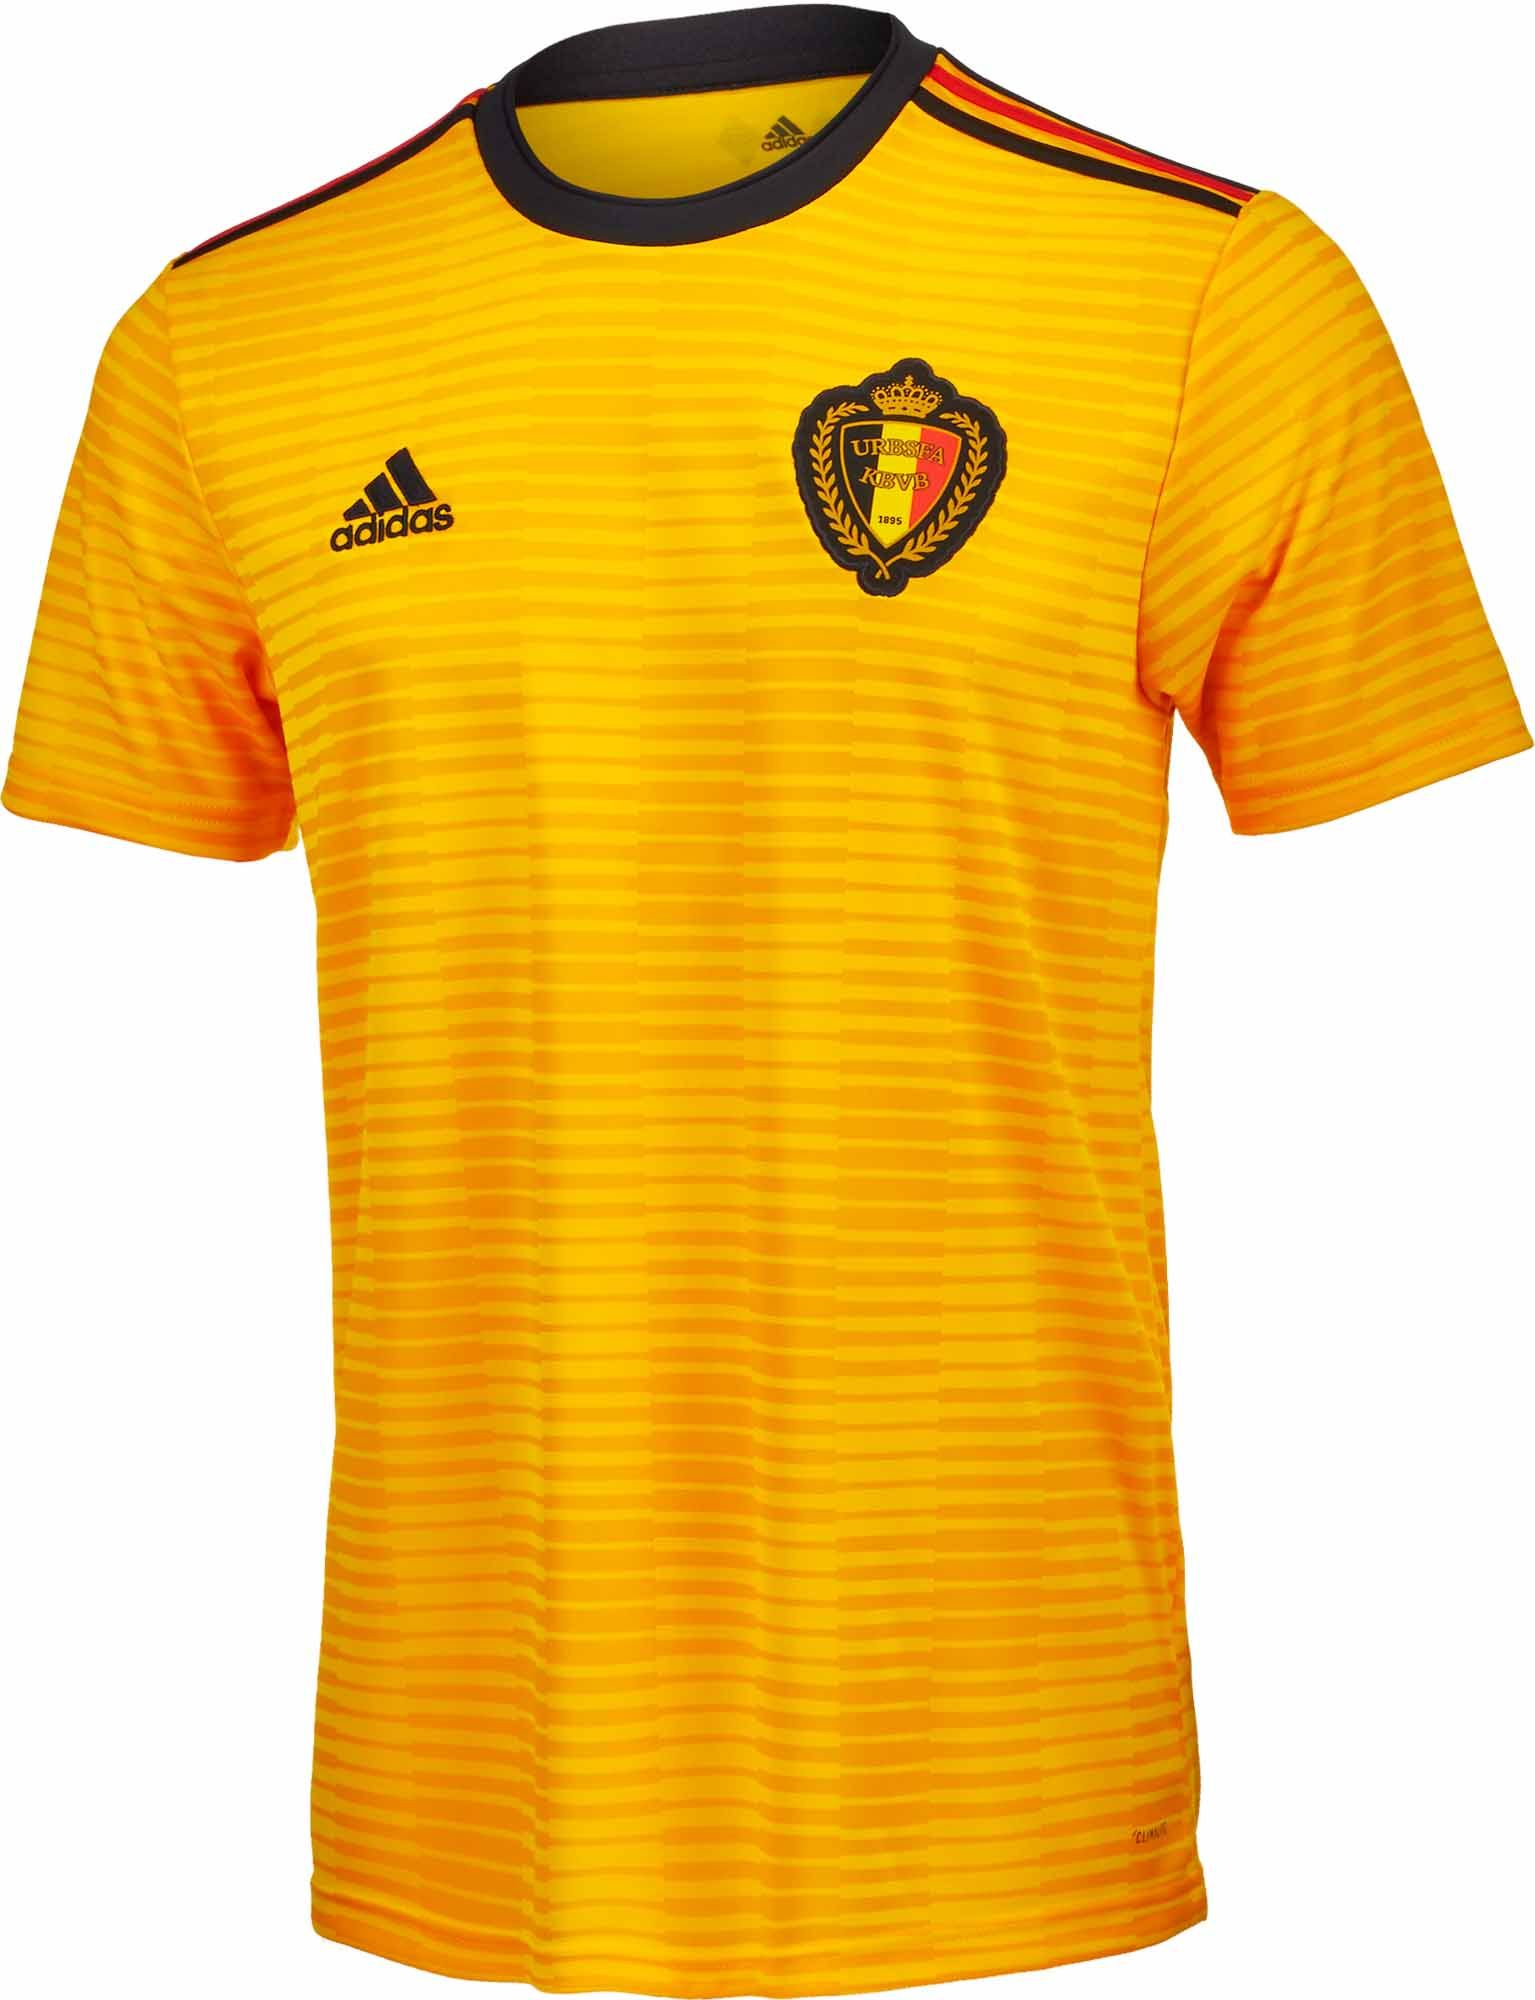 57f9b364ddf 2018 adidas Belgium Away Jersey. Shop for yours at www.soccerpro.com